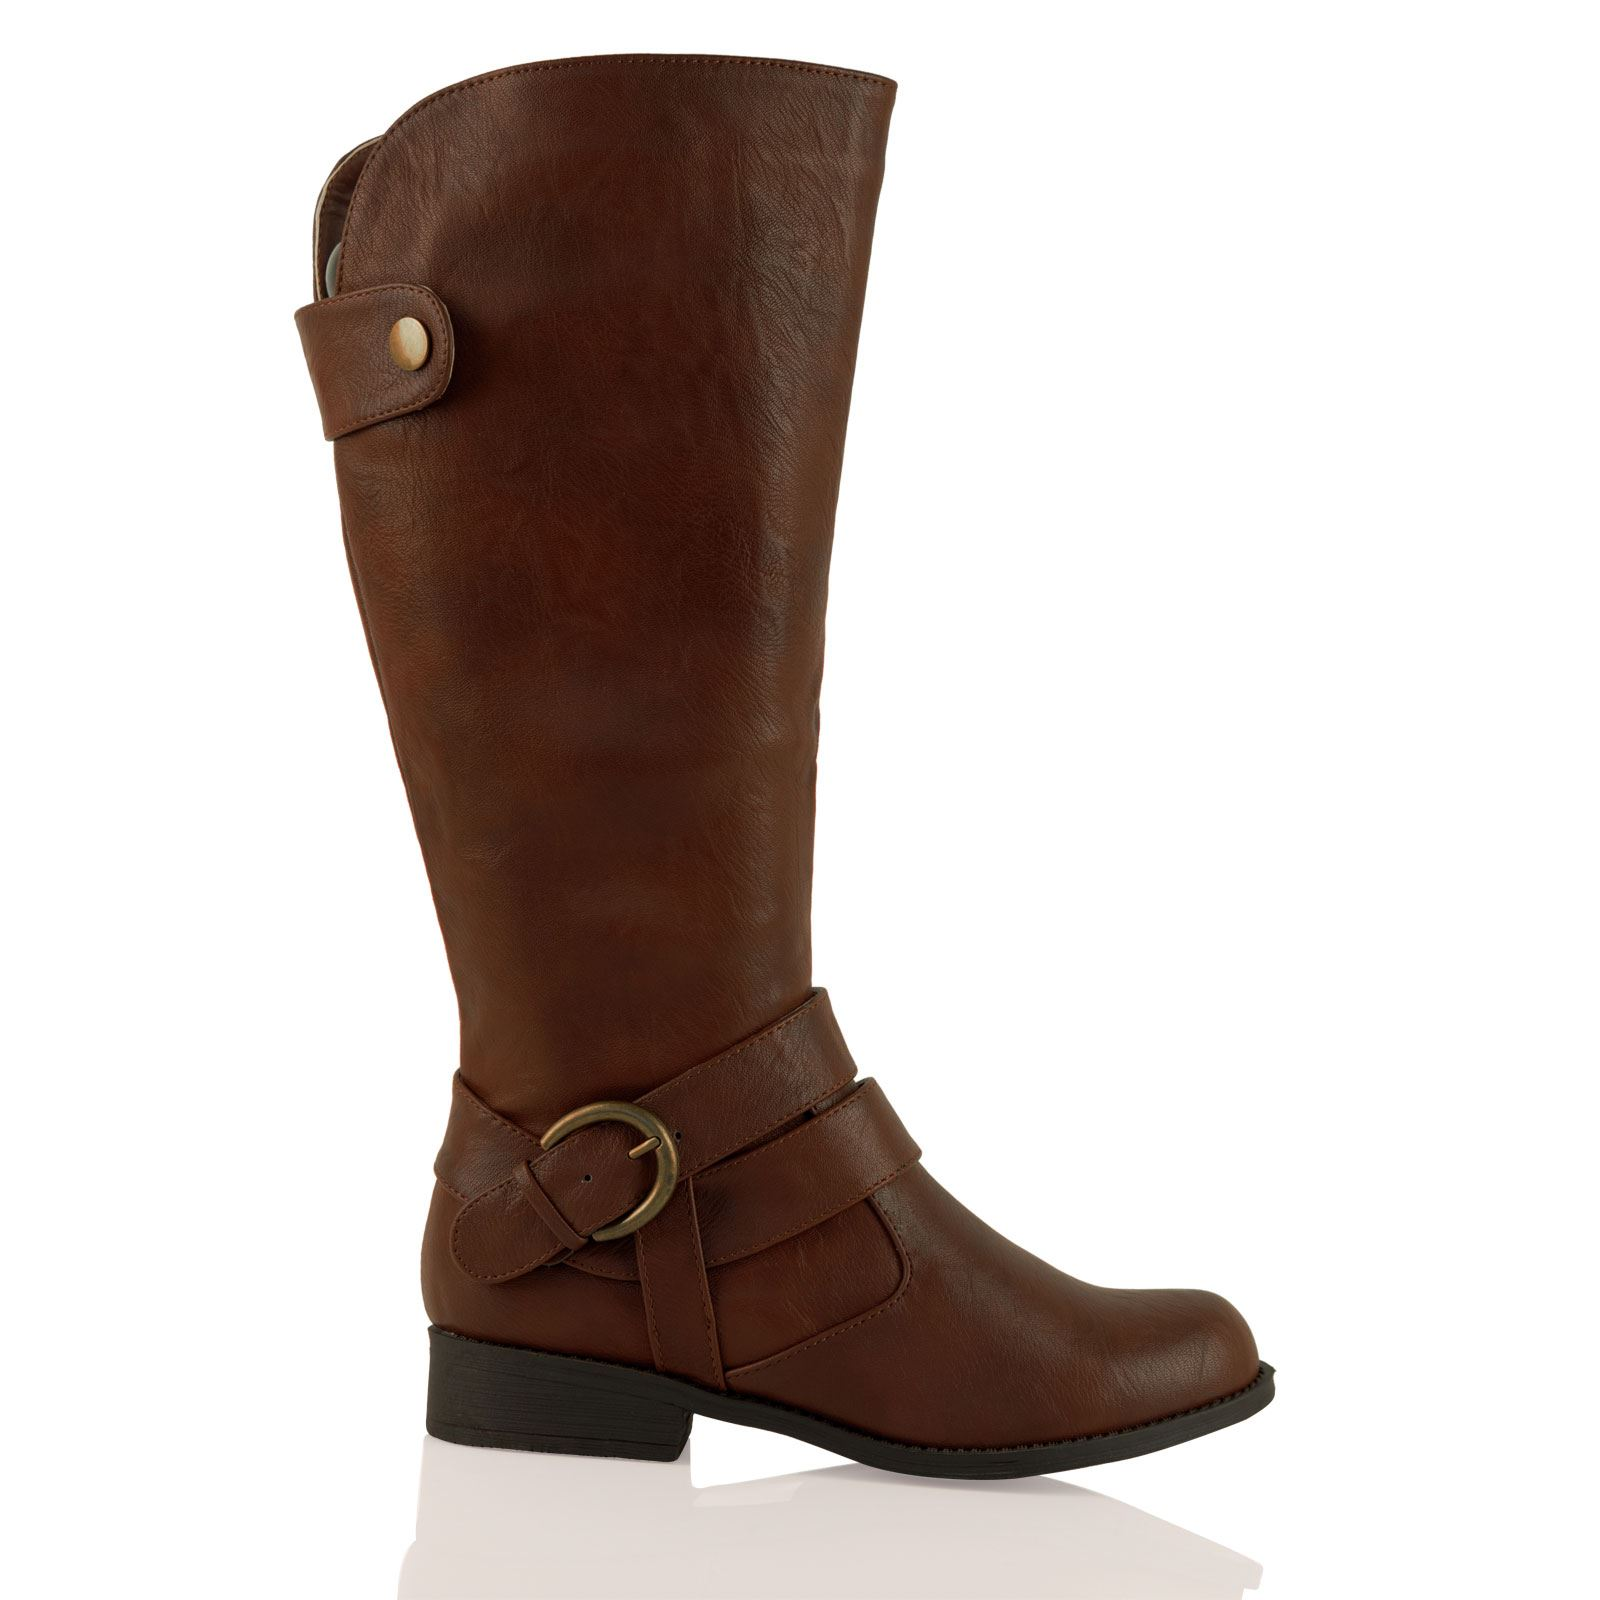 Unique New BROWN TALL Leather Womens Ladies Cowboy Fashion Riding Boots - SALE Price! | EBay